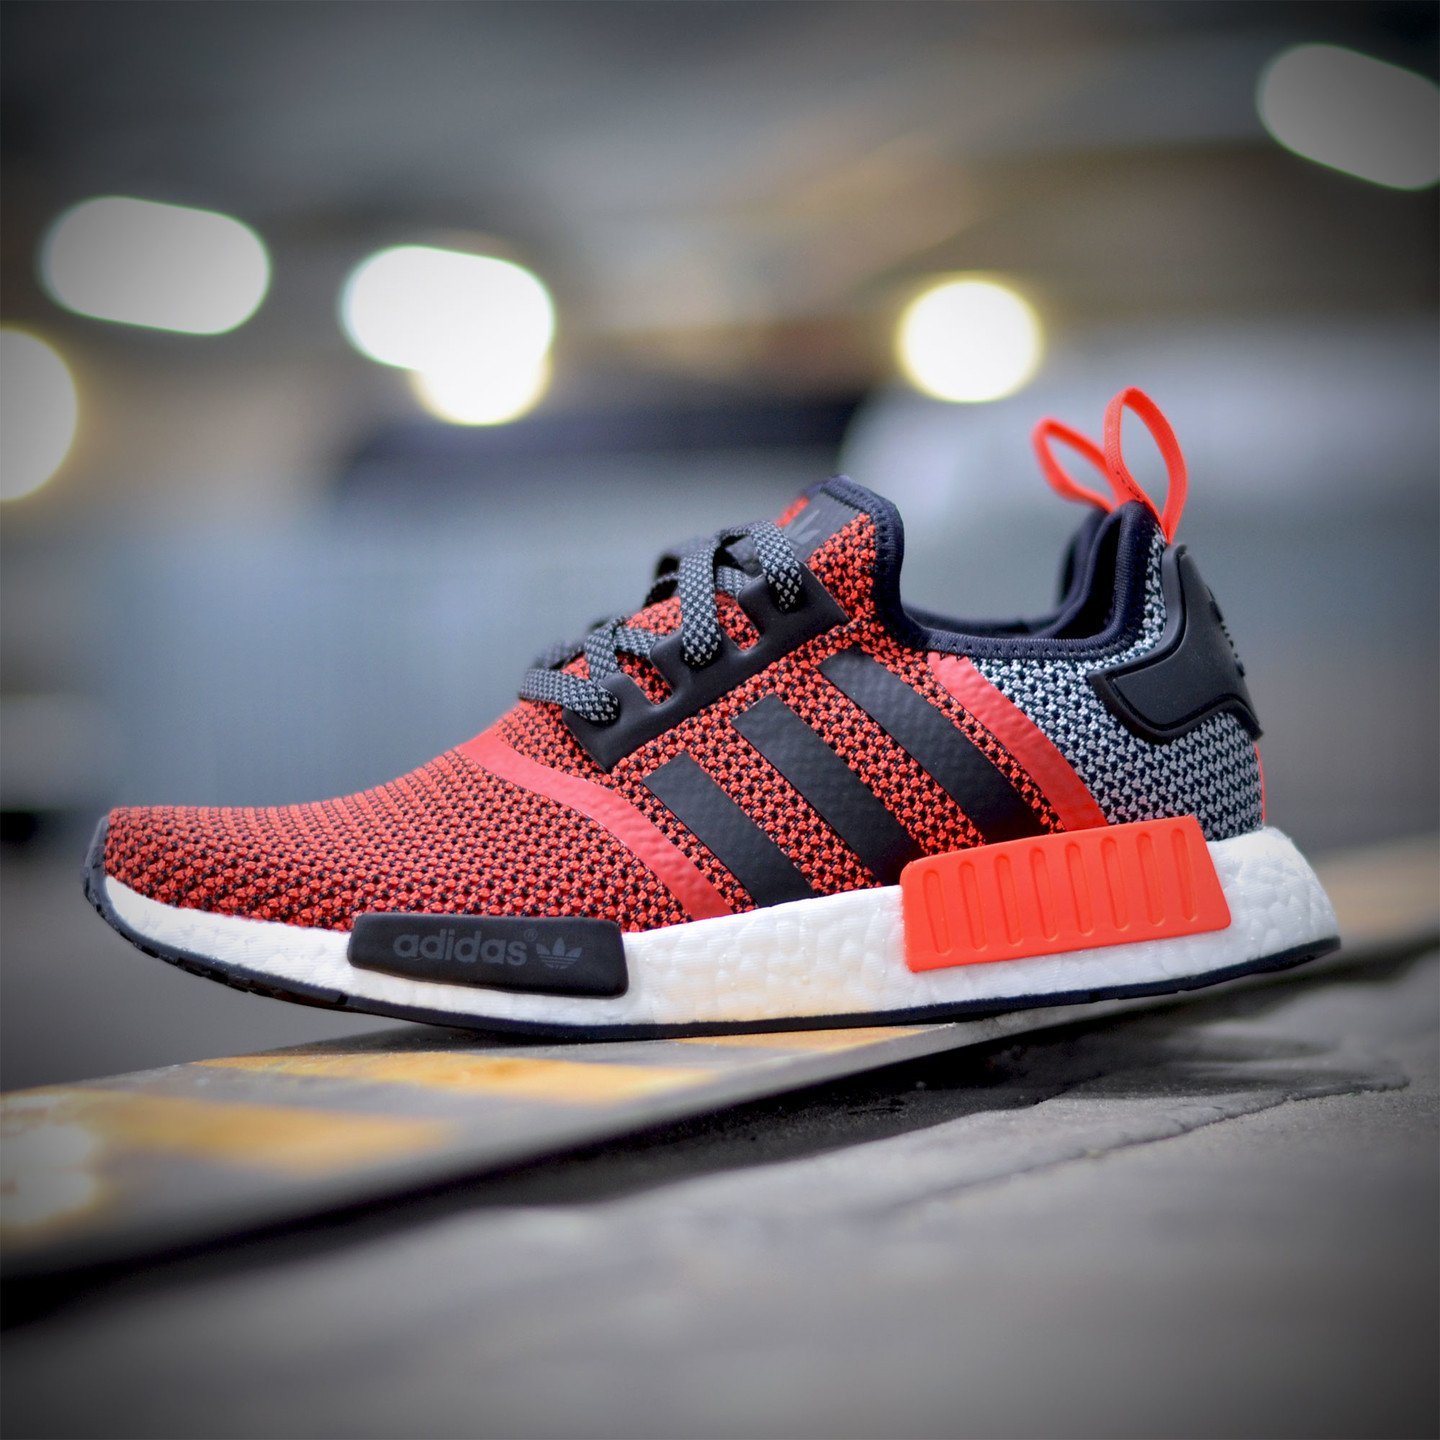 Adidas NMD R1 Runner Lush Red / Core Black S79158-38.66